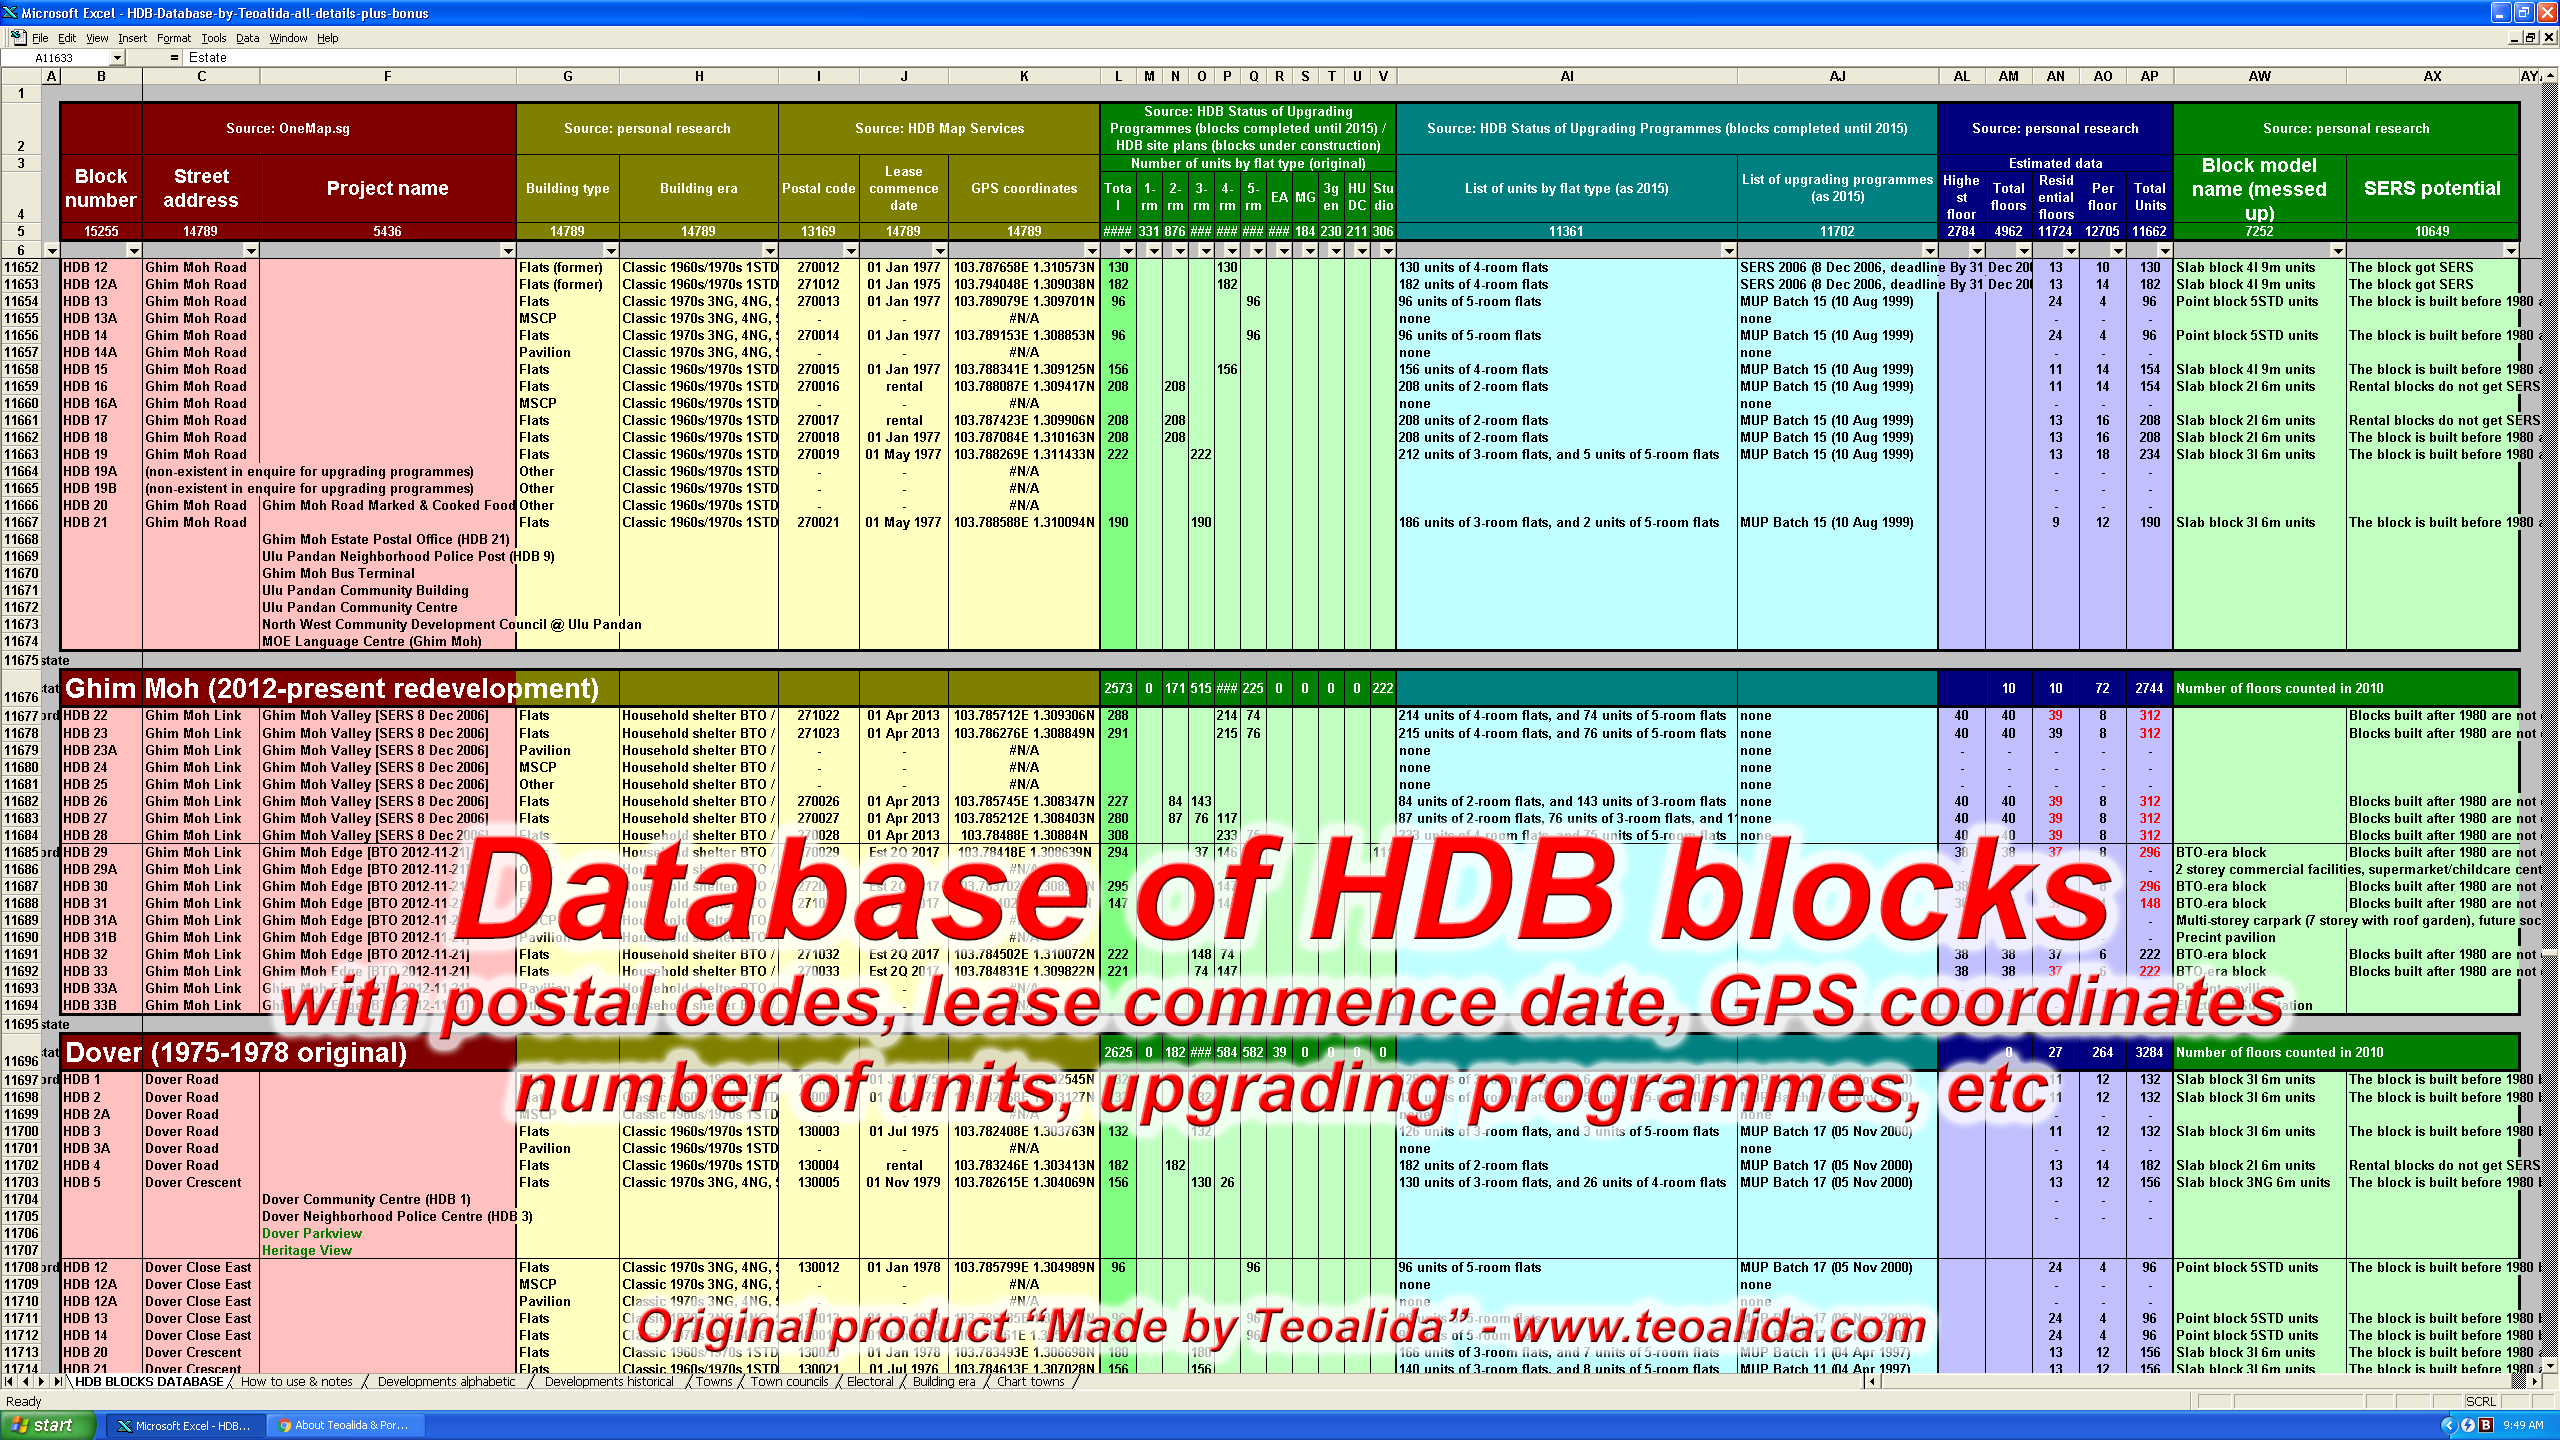 HDB Database, block number, street address, postal code, lease commemnce date, number of units breakdown by flat type, upgrading programmes